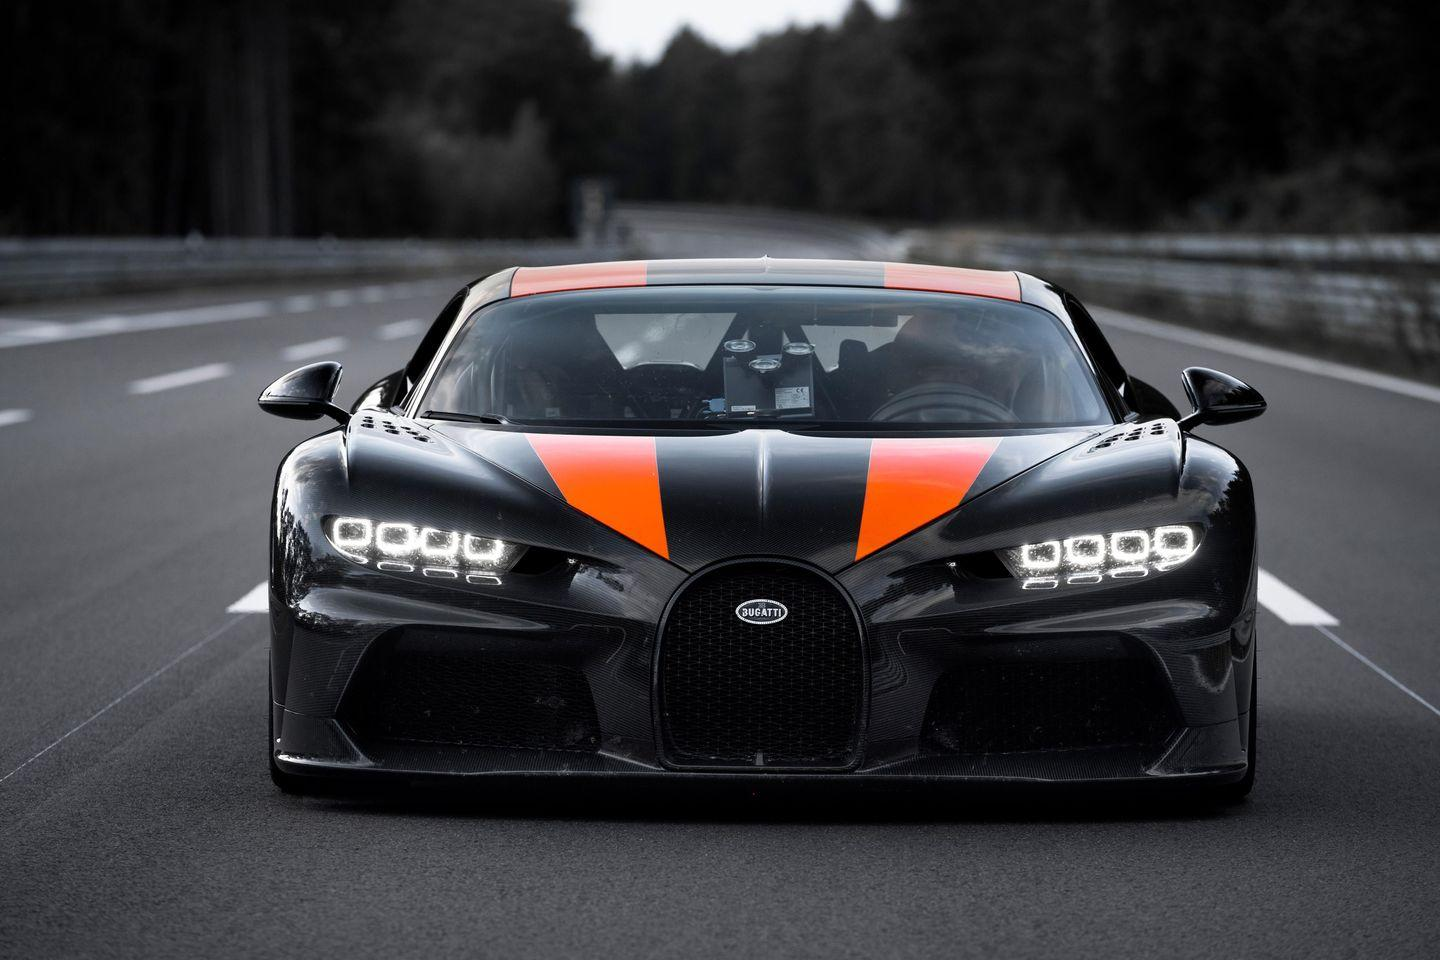 """<p>Bugatti shocked the world when it revealed it had broken the 300-mph-barrier for production vehicles with its <a href=""""https://www.roadandtrack.com/new-cars/a29033361/bugatti-chiron-super-sport-300-record-run-jump/"""" rel=""""nofollow noopener"""" target=""""_blank"""" data-ylk=""""slk:Chiron Super Sport 300+"""" class=""""link rapid-noclick-resp"""">Chiron Super Sport 300+</a>. It goes without saying that having to worry about a third pedal and a shifter at those speeds is out of the question. </p>"""